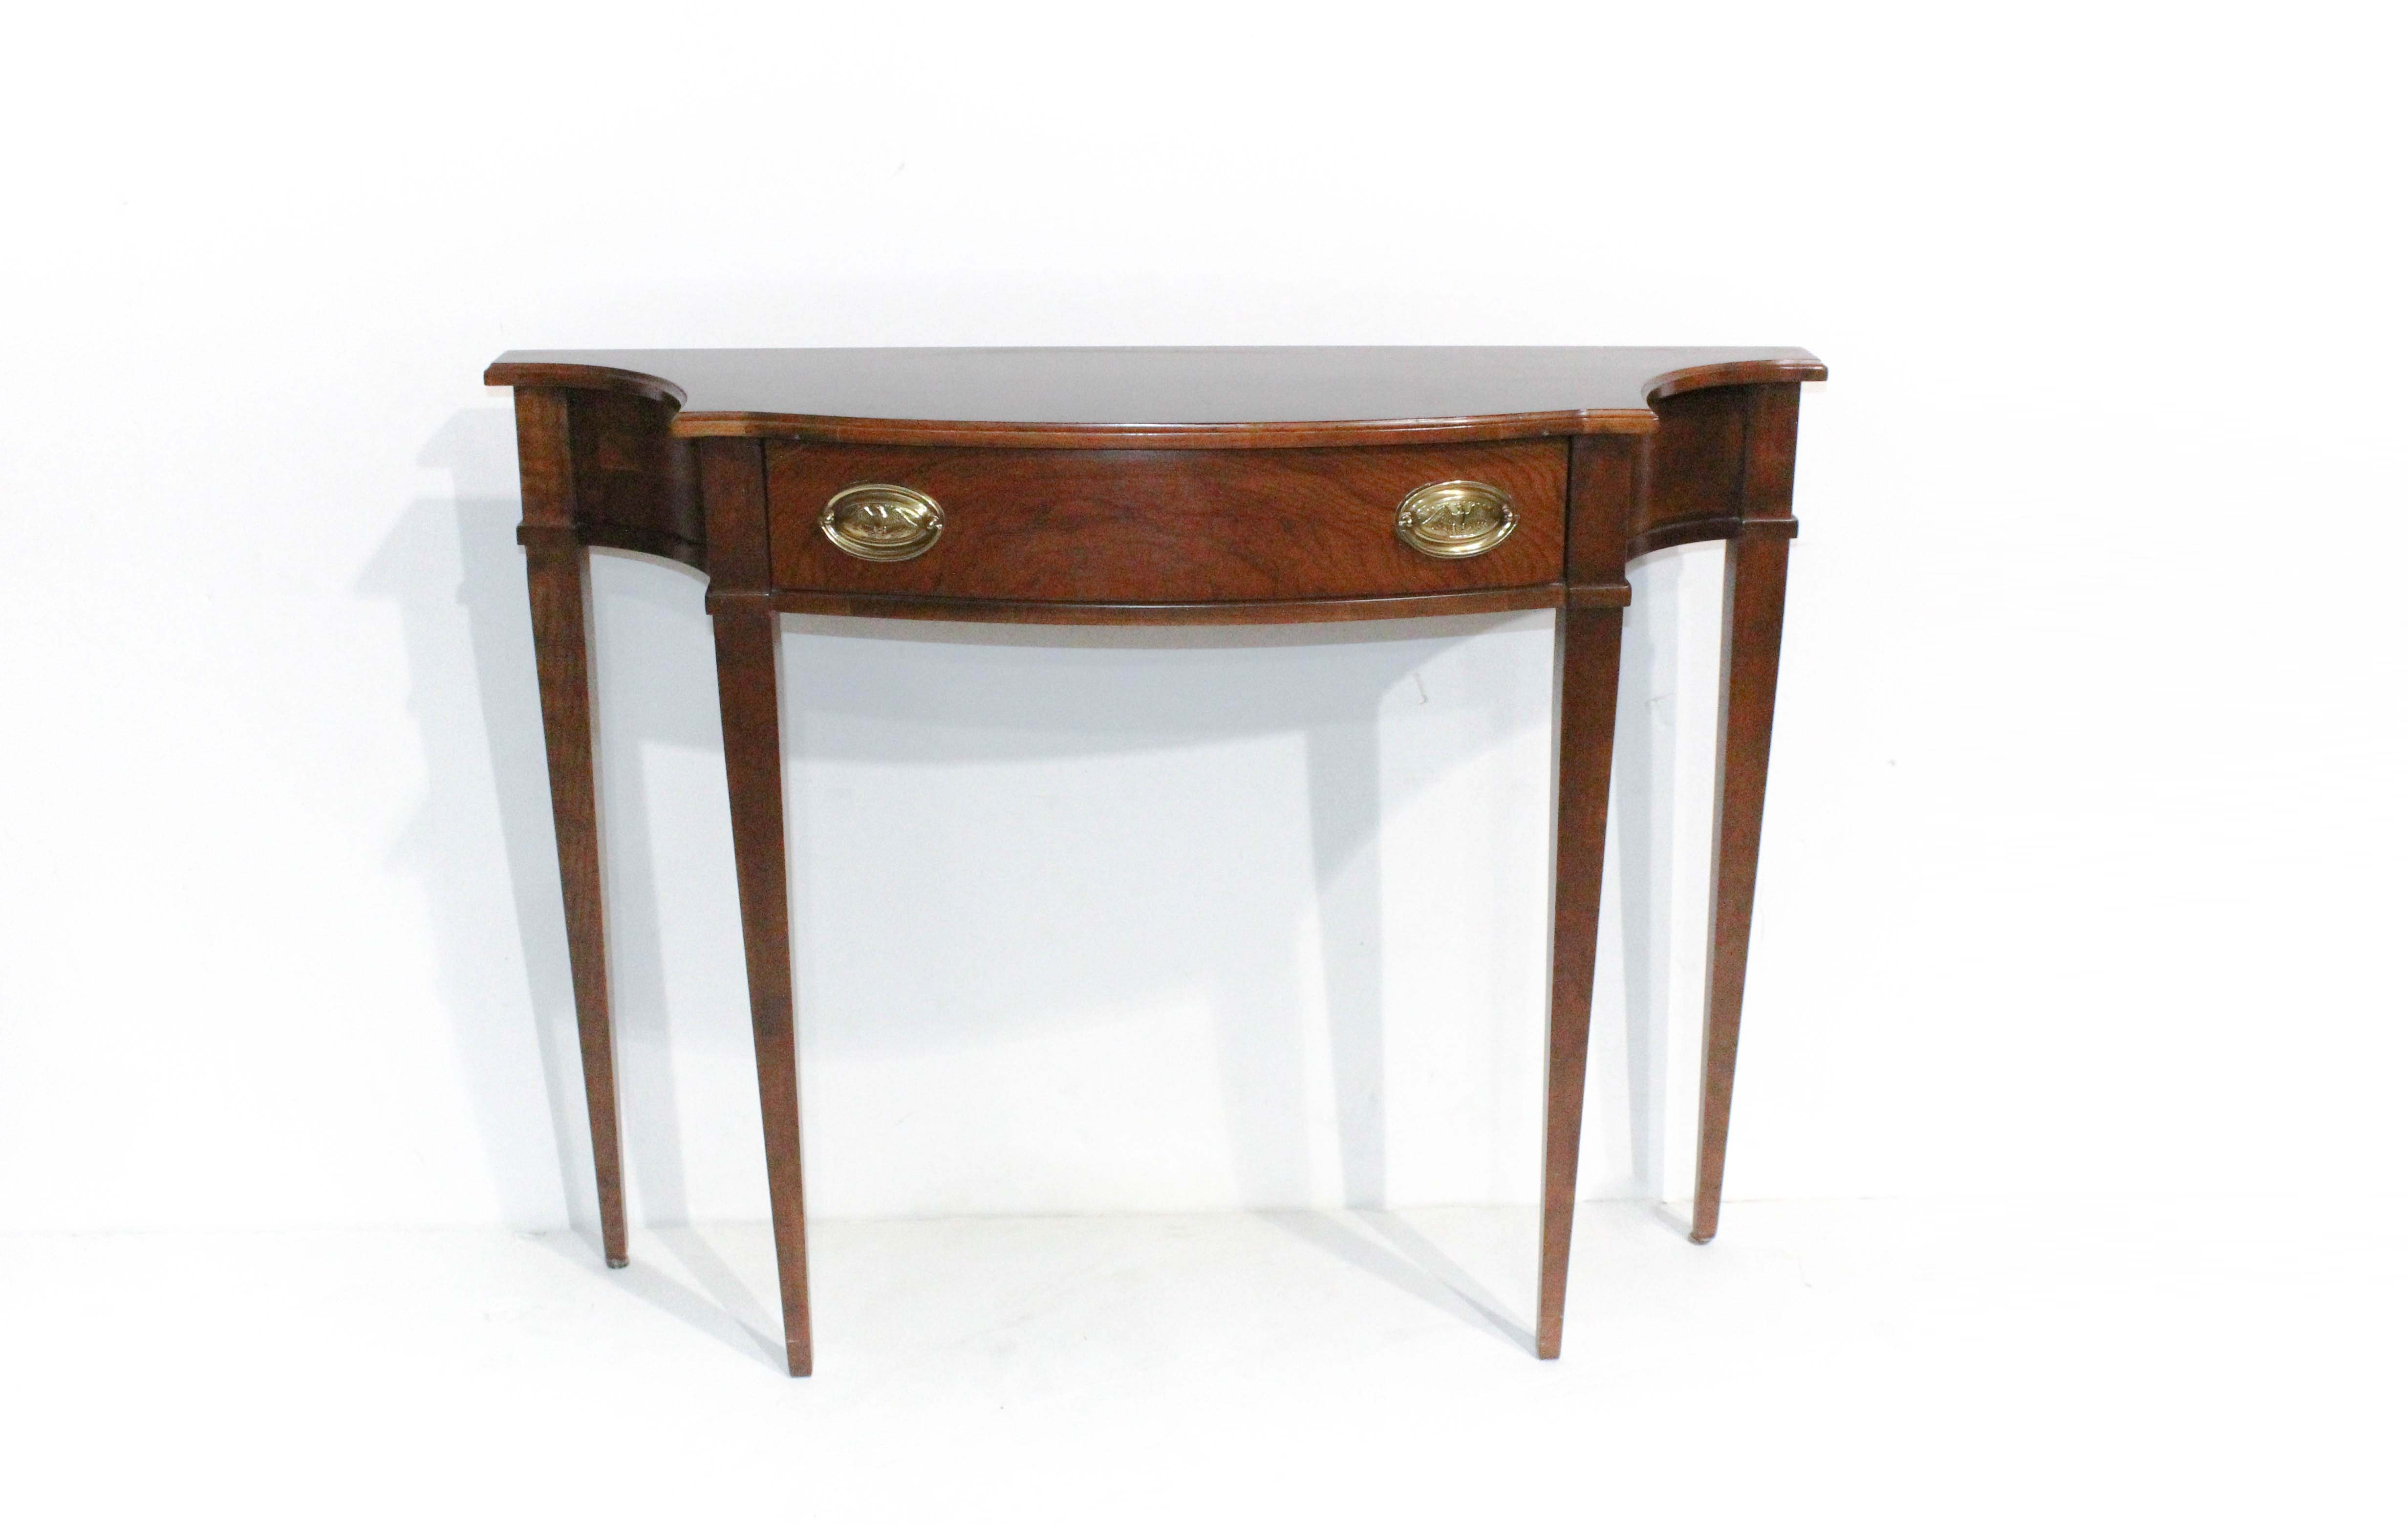 Inspirational Vintage Hepplewhite Style Cherry Console Table by Harden Amazing - Amazing cherry console table Amazing